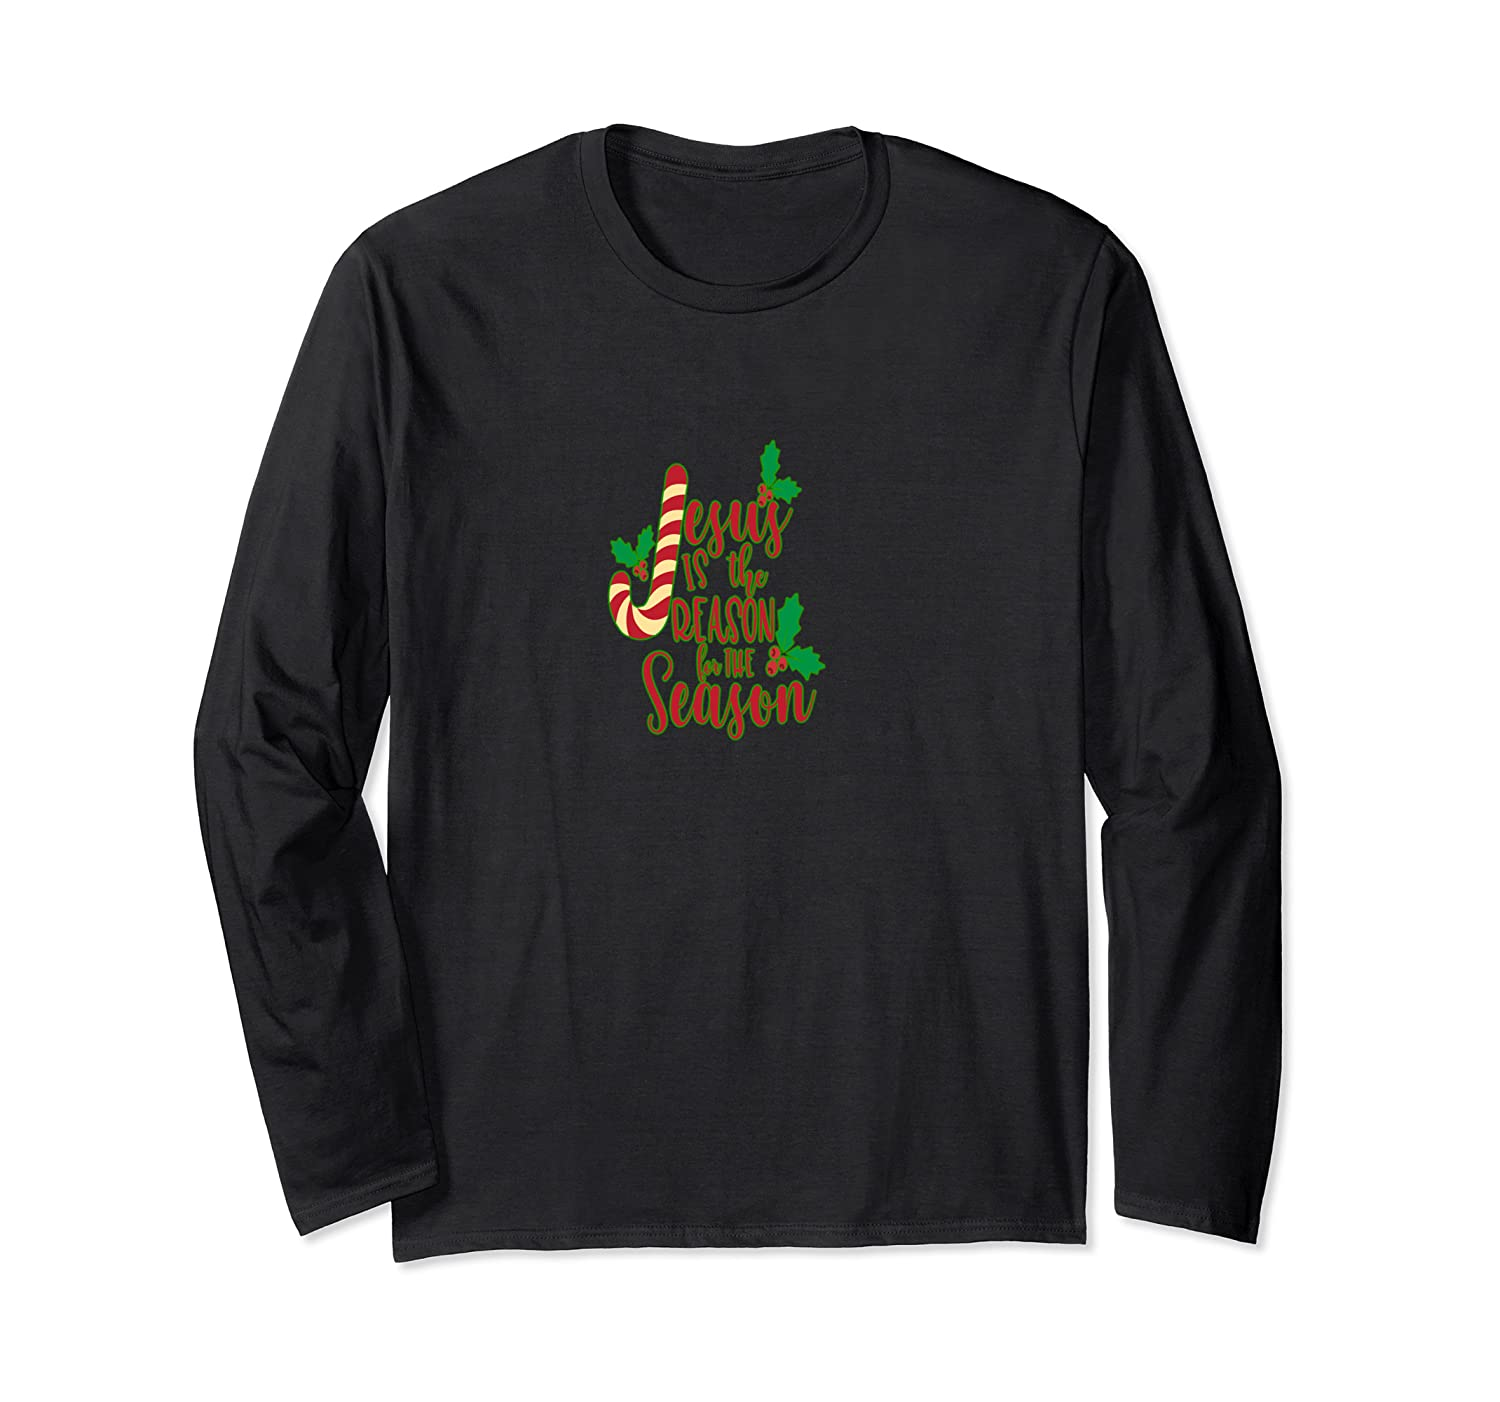 Jesus Is The Reason For The Season Is A True Holiday Gift! Long Sleeve T-shirt